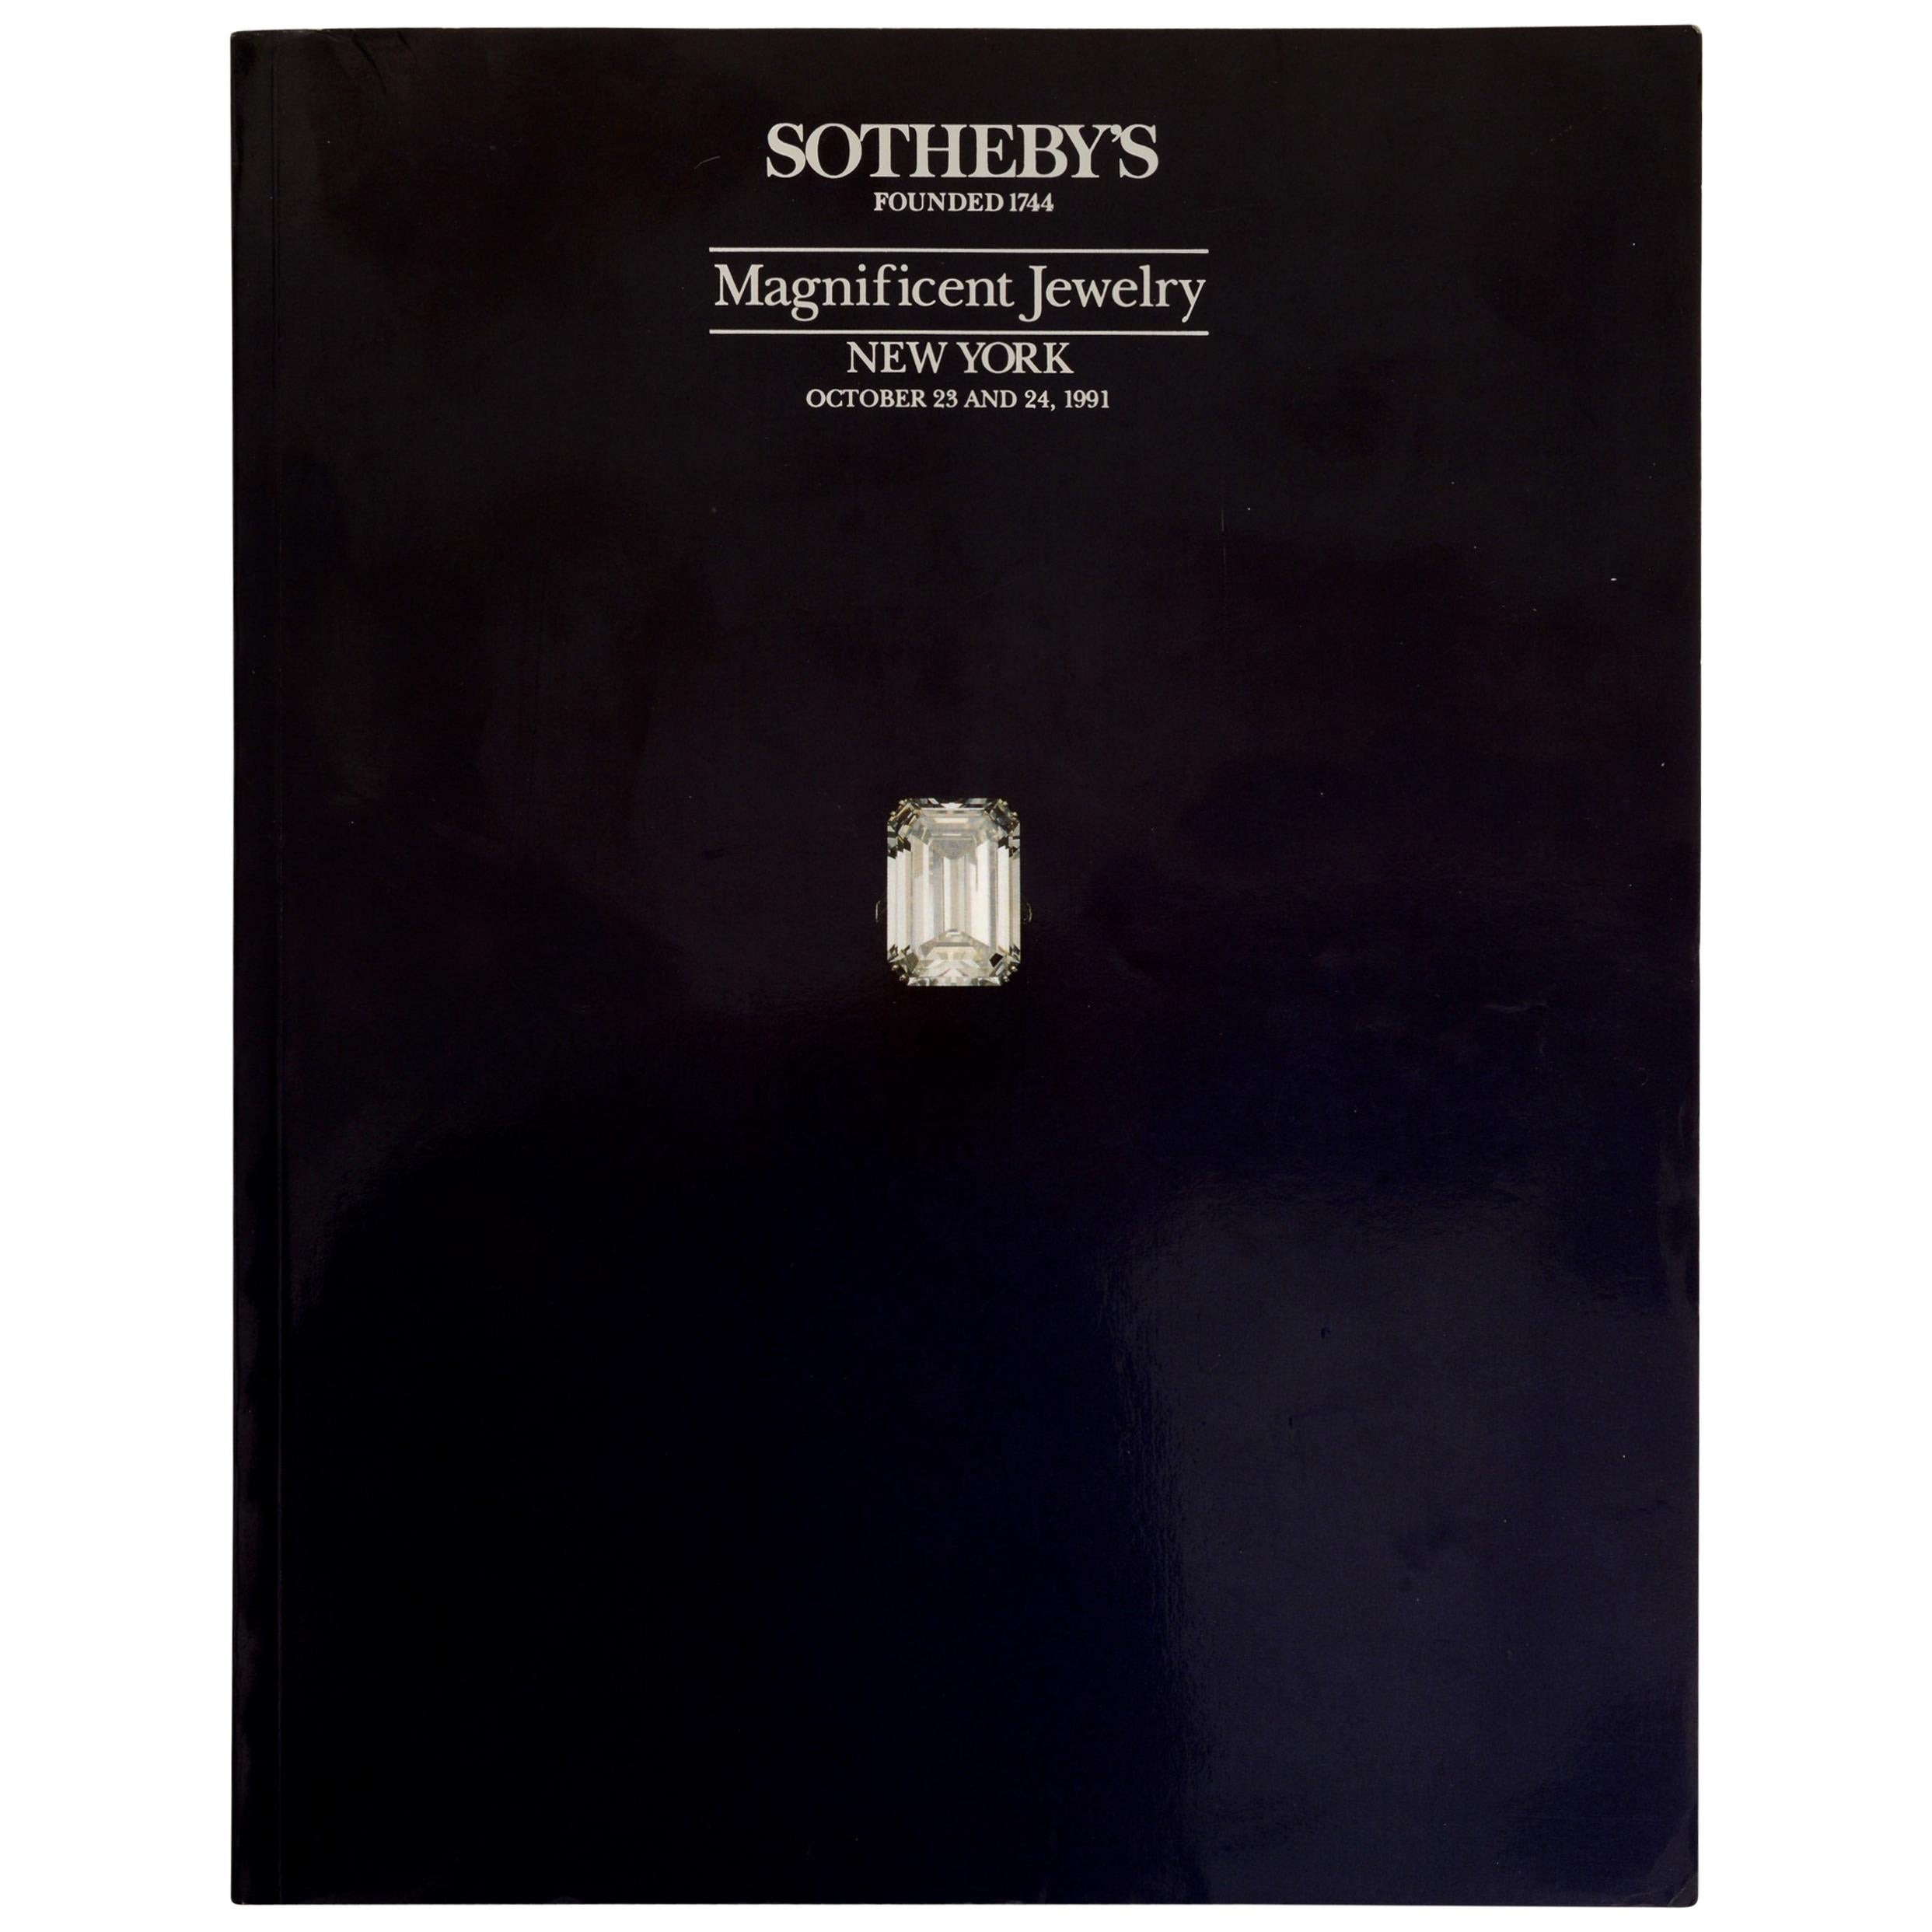 Sotheby's Magnificent Jewelry New York October 23 and 24, 1991